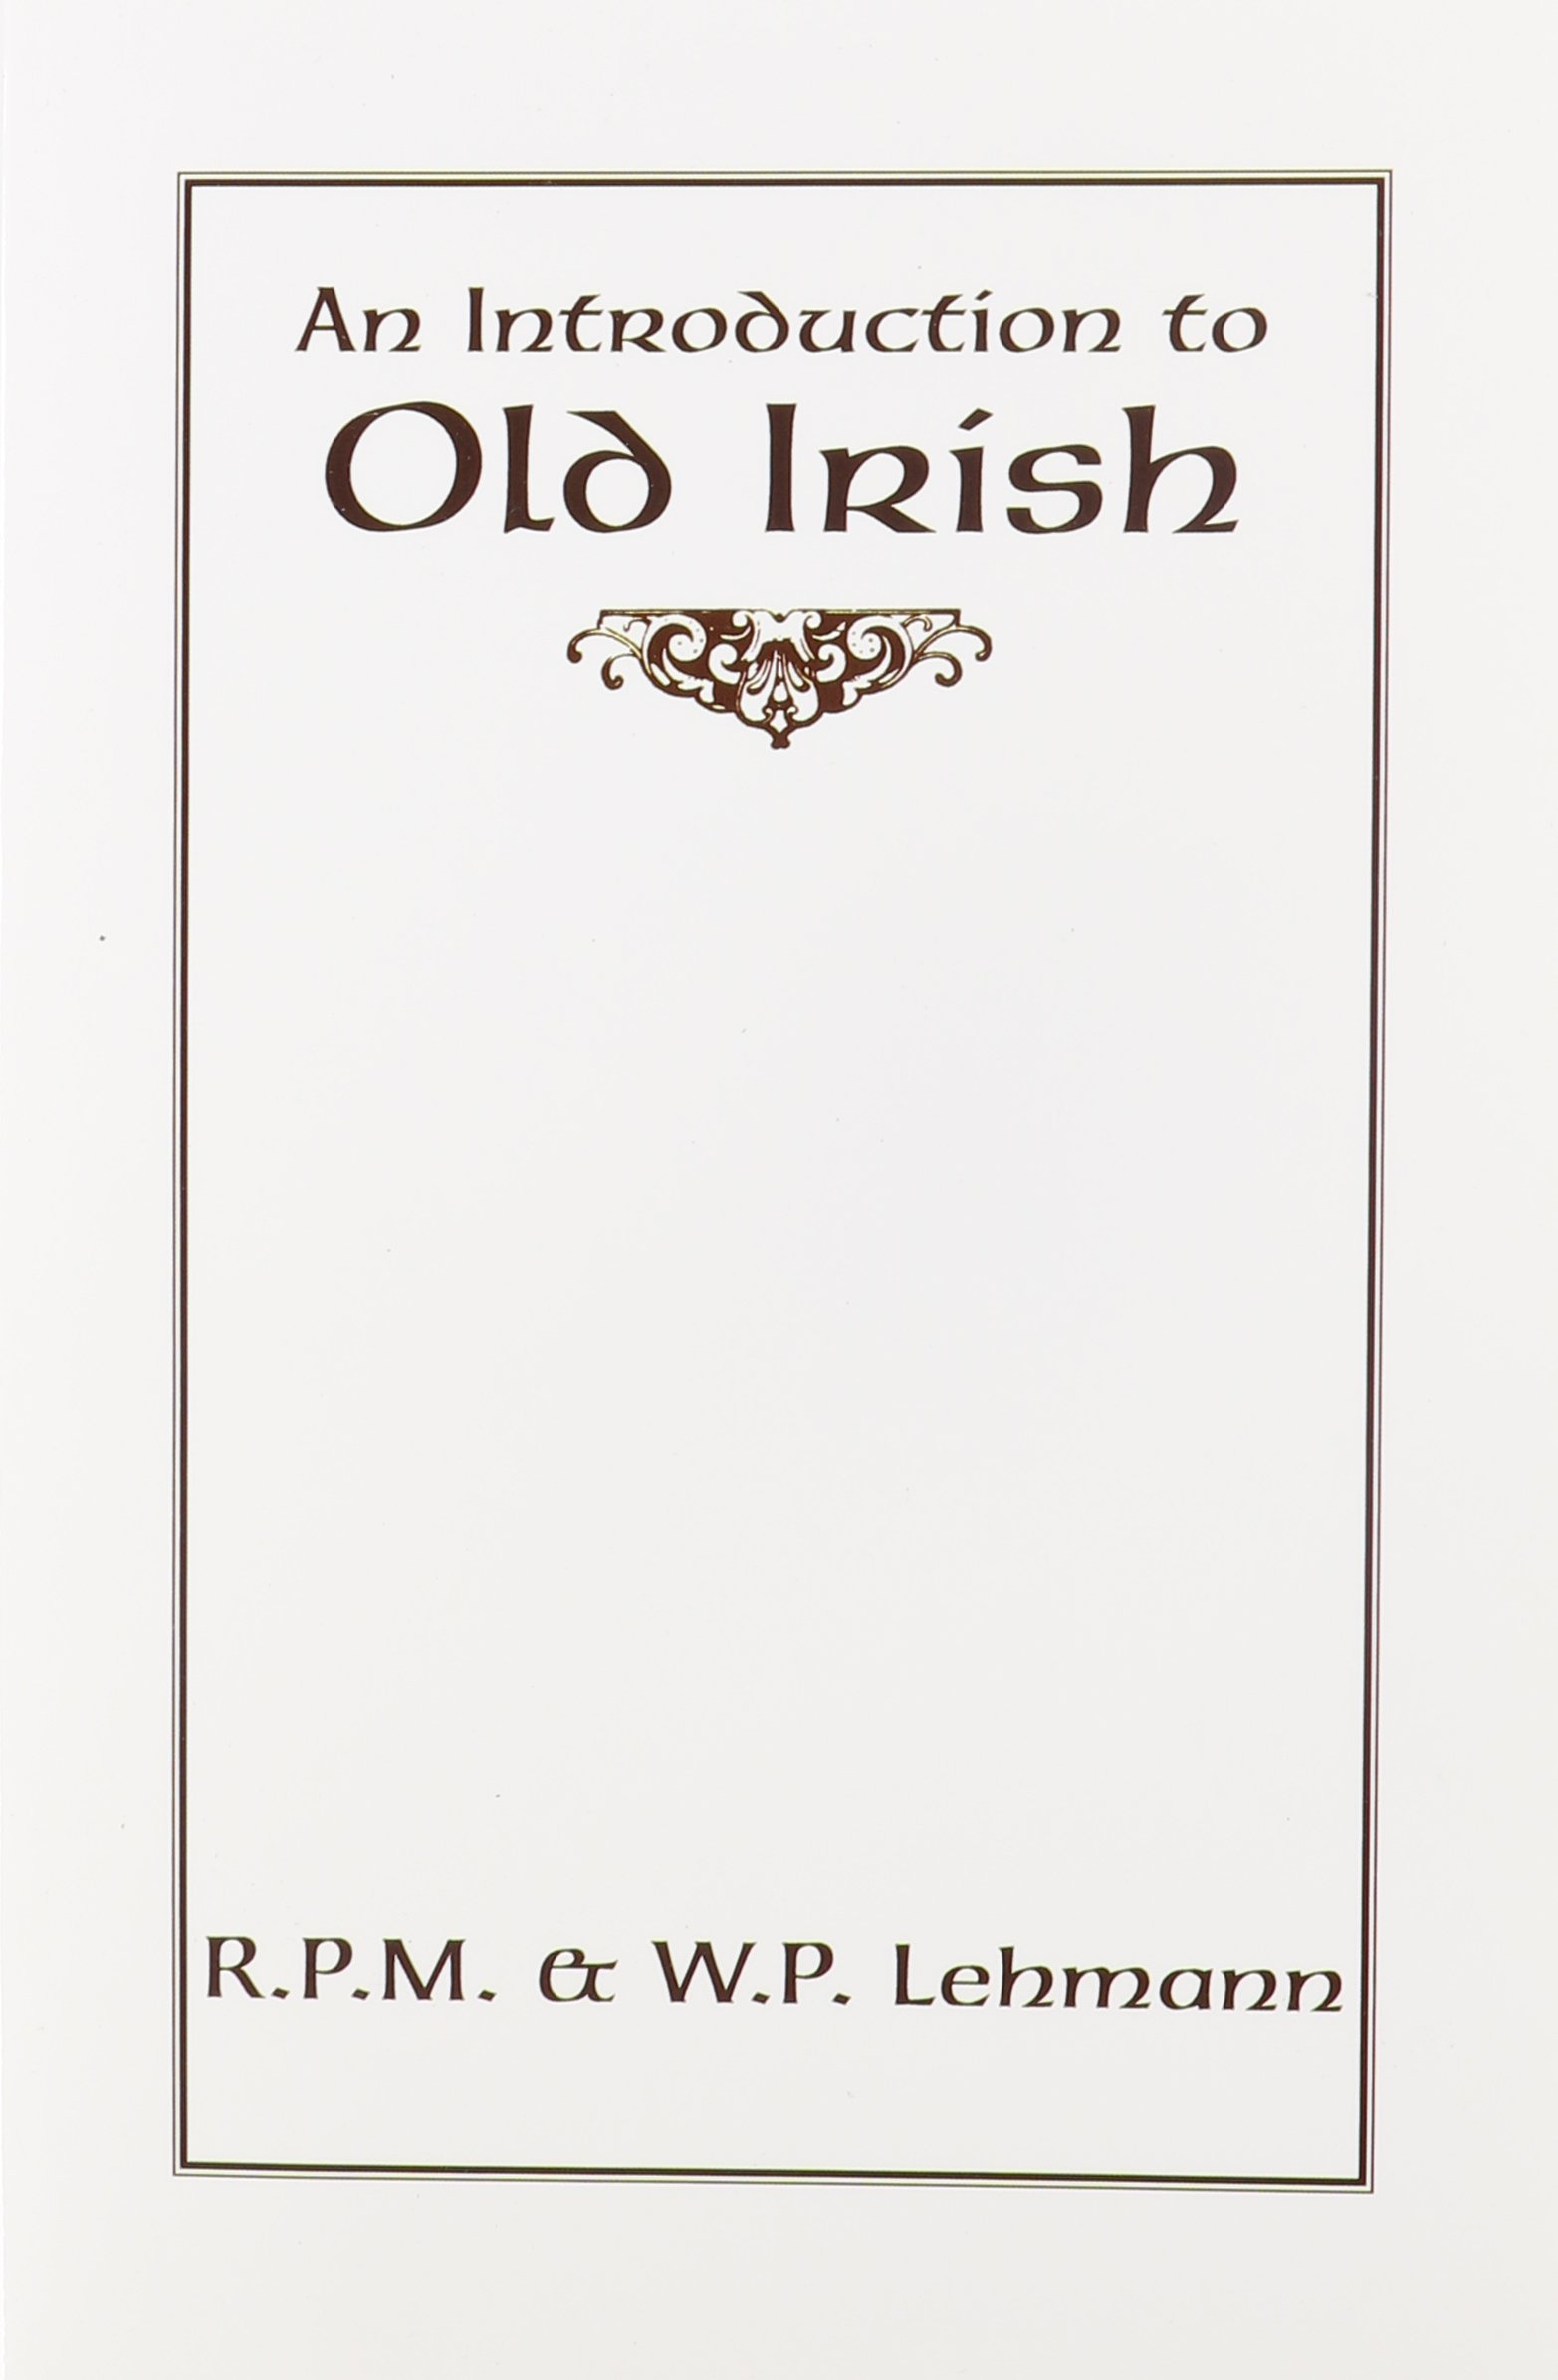 An Introduction to Old Irish (Introductions to Older Languages) by The Modern Language Association of America